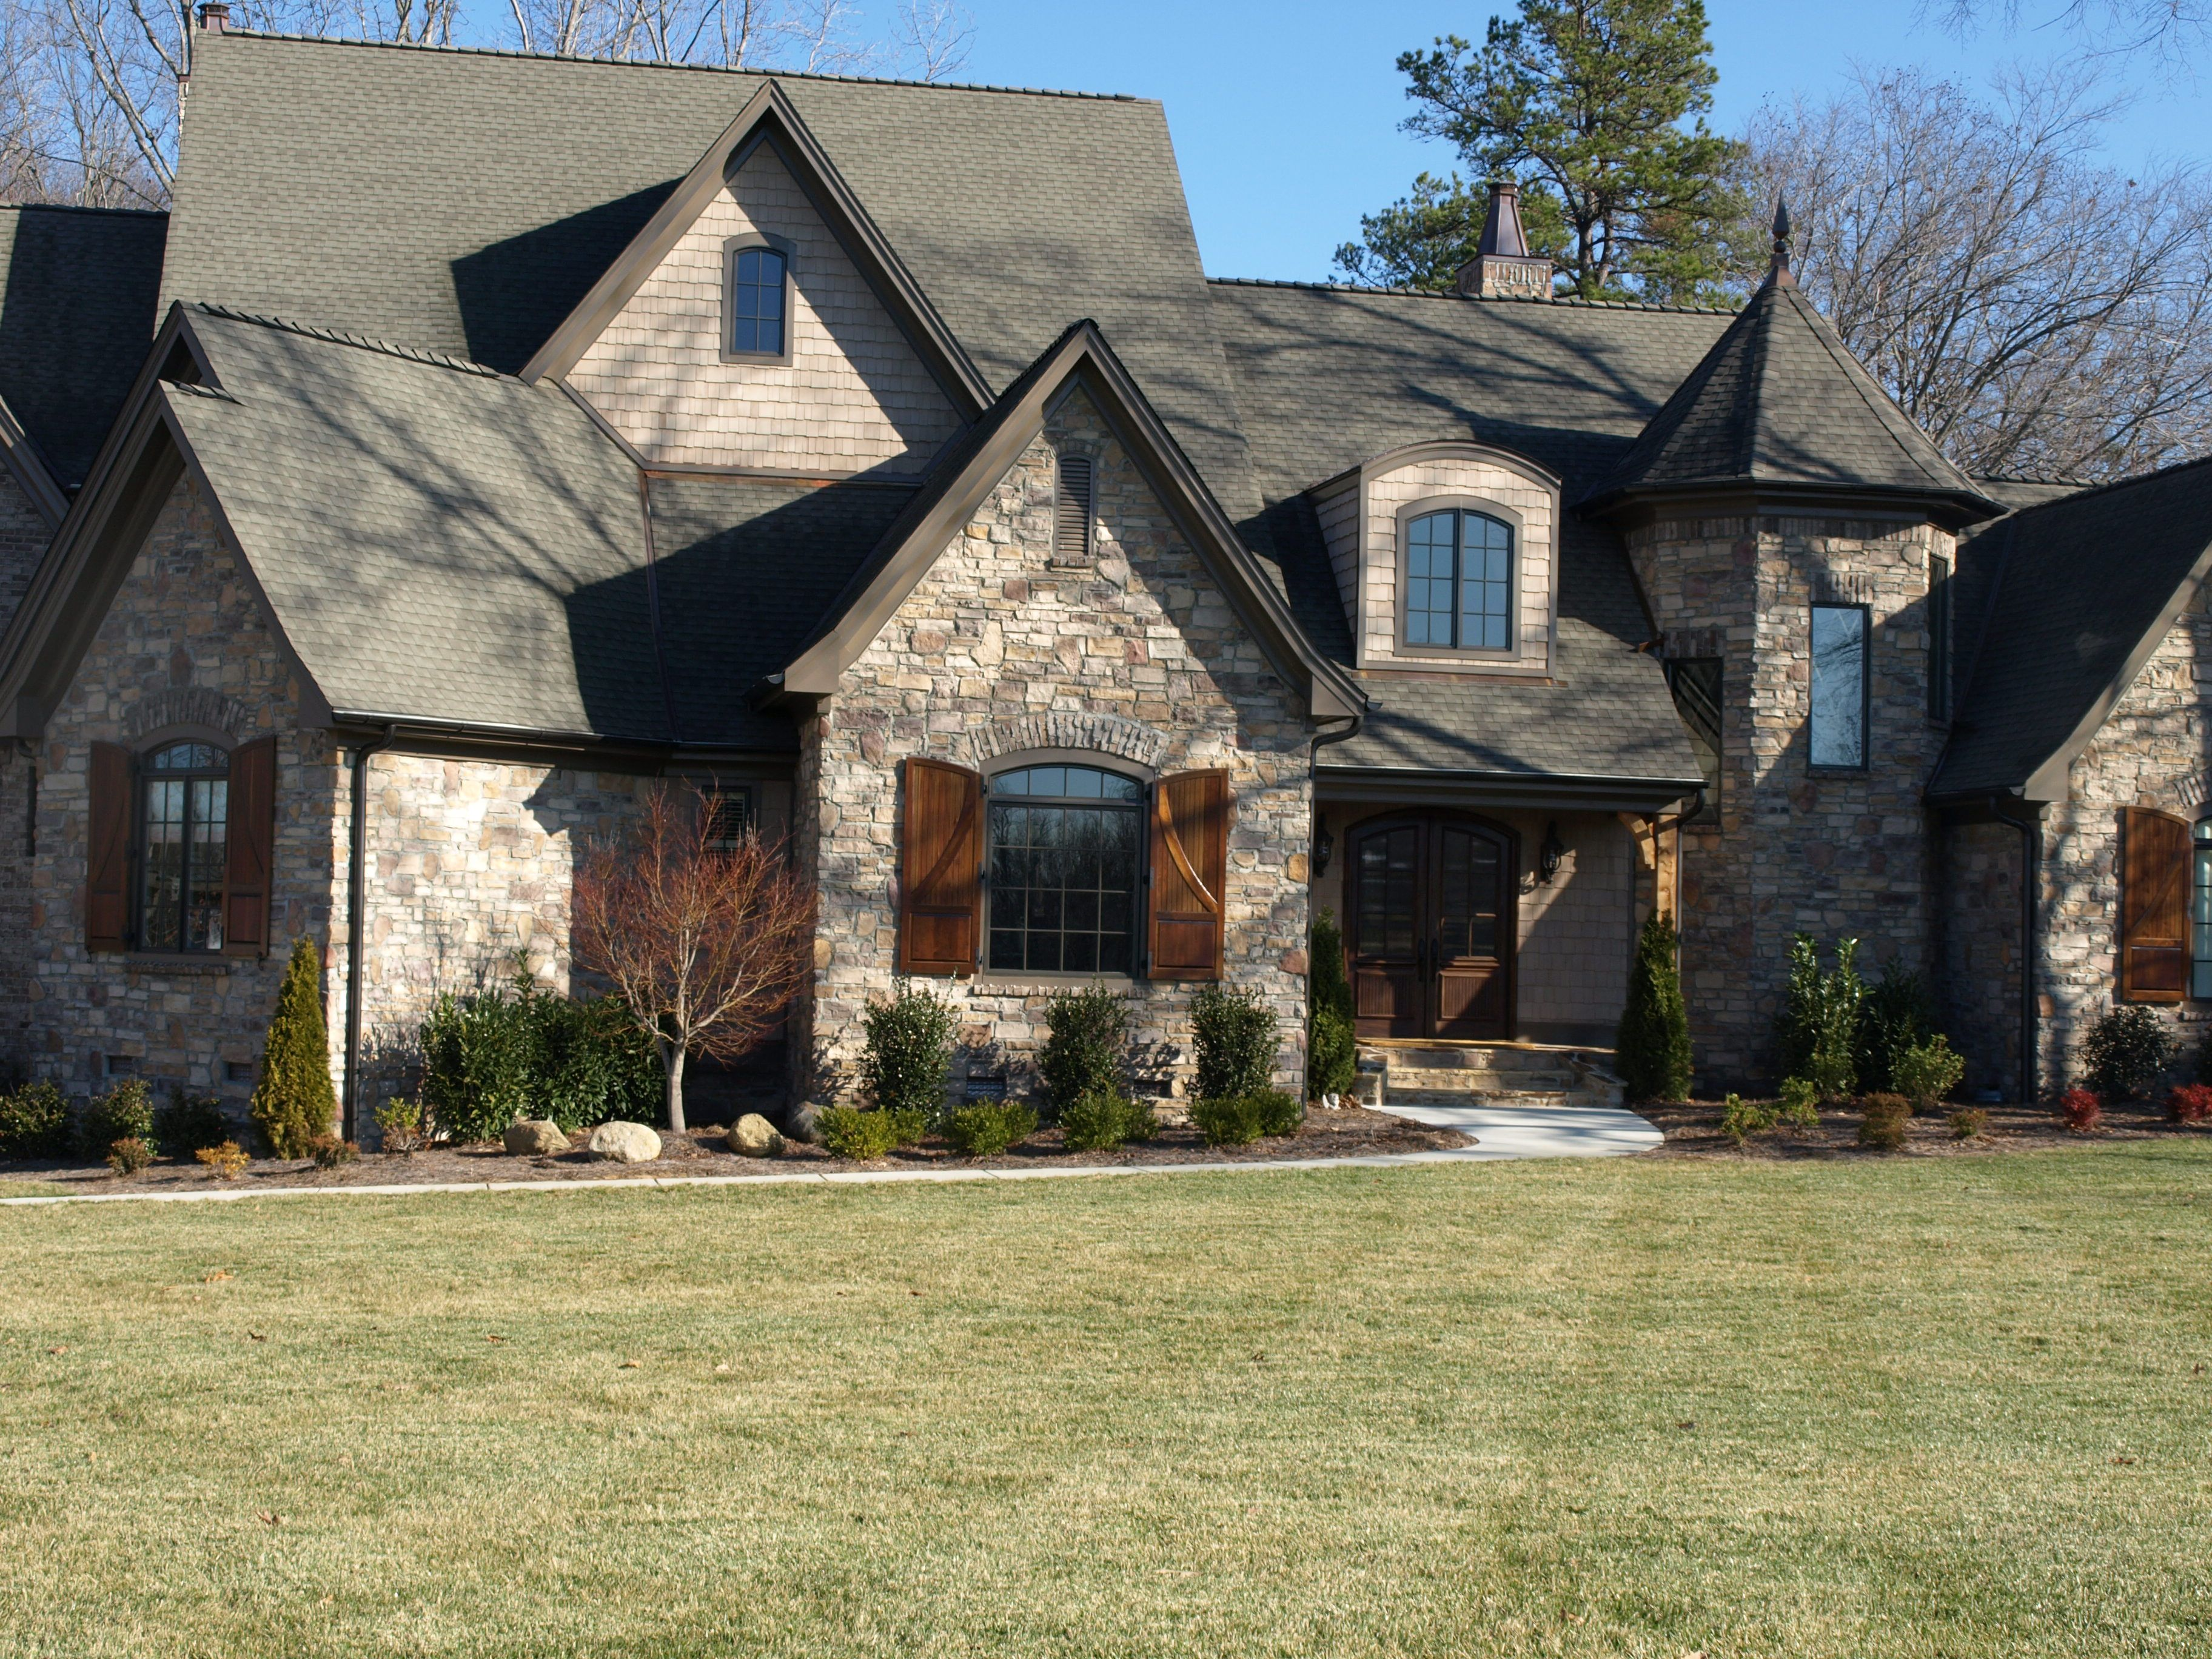 Stone Veneer Siding With Images Exterior House Color Stone Siding Exterior Stone Panels Exterior